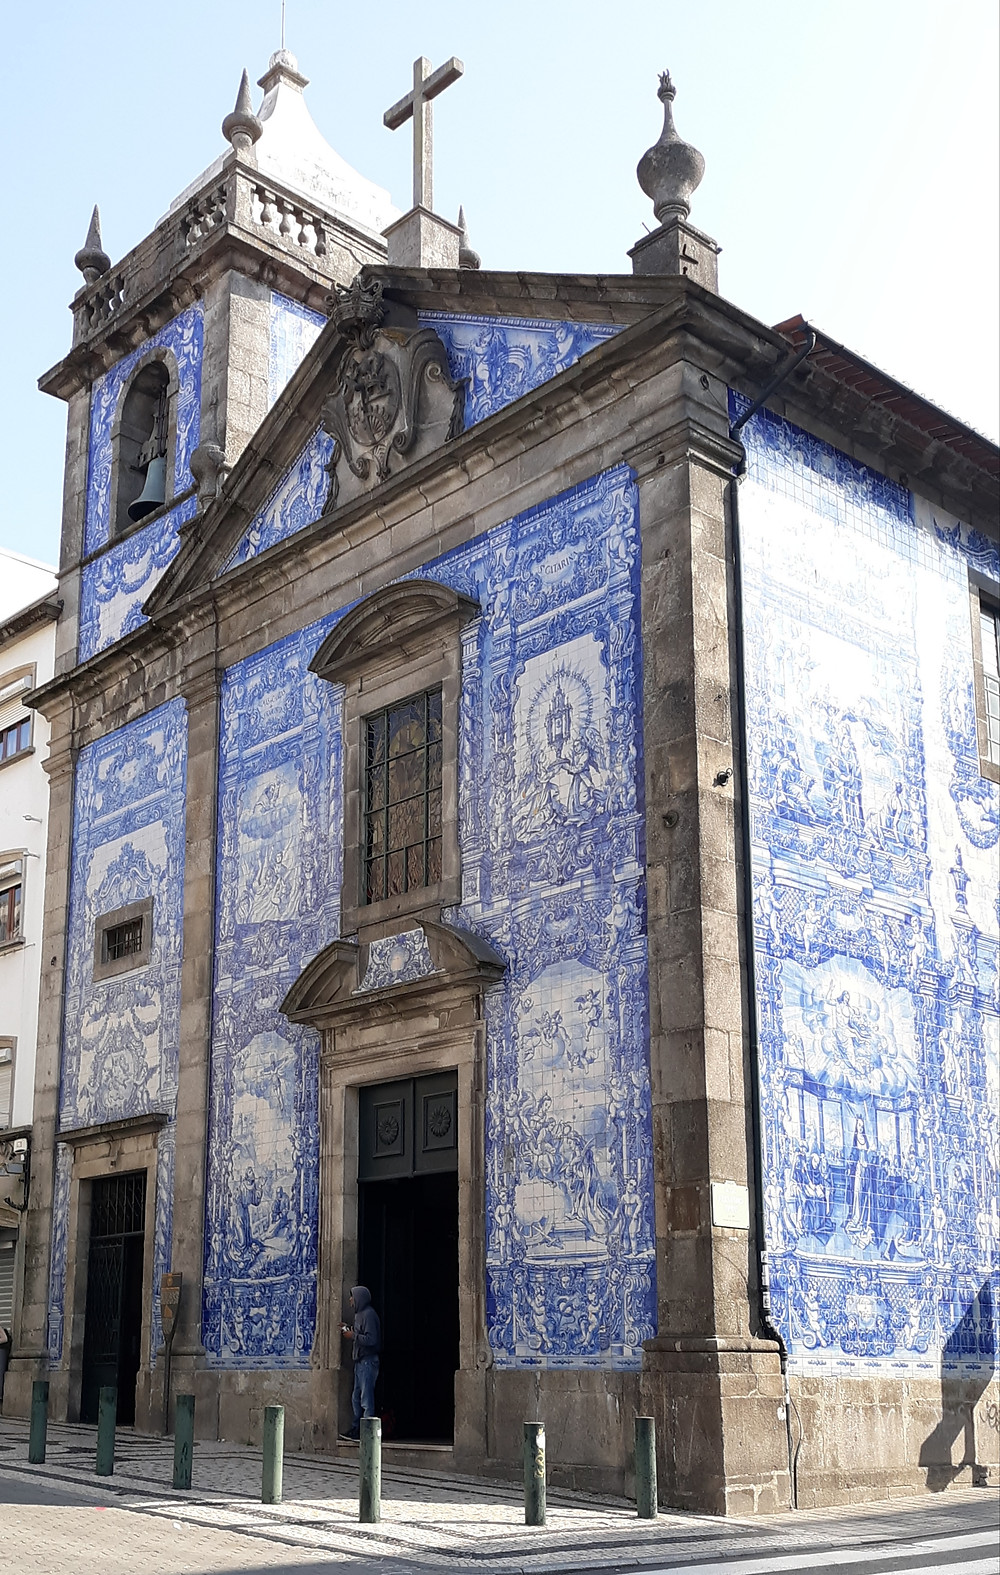 Chapel or Souls Blue and White Tile